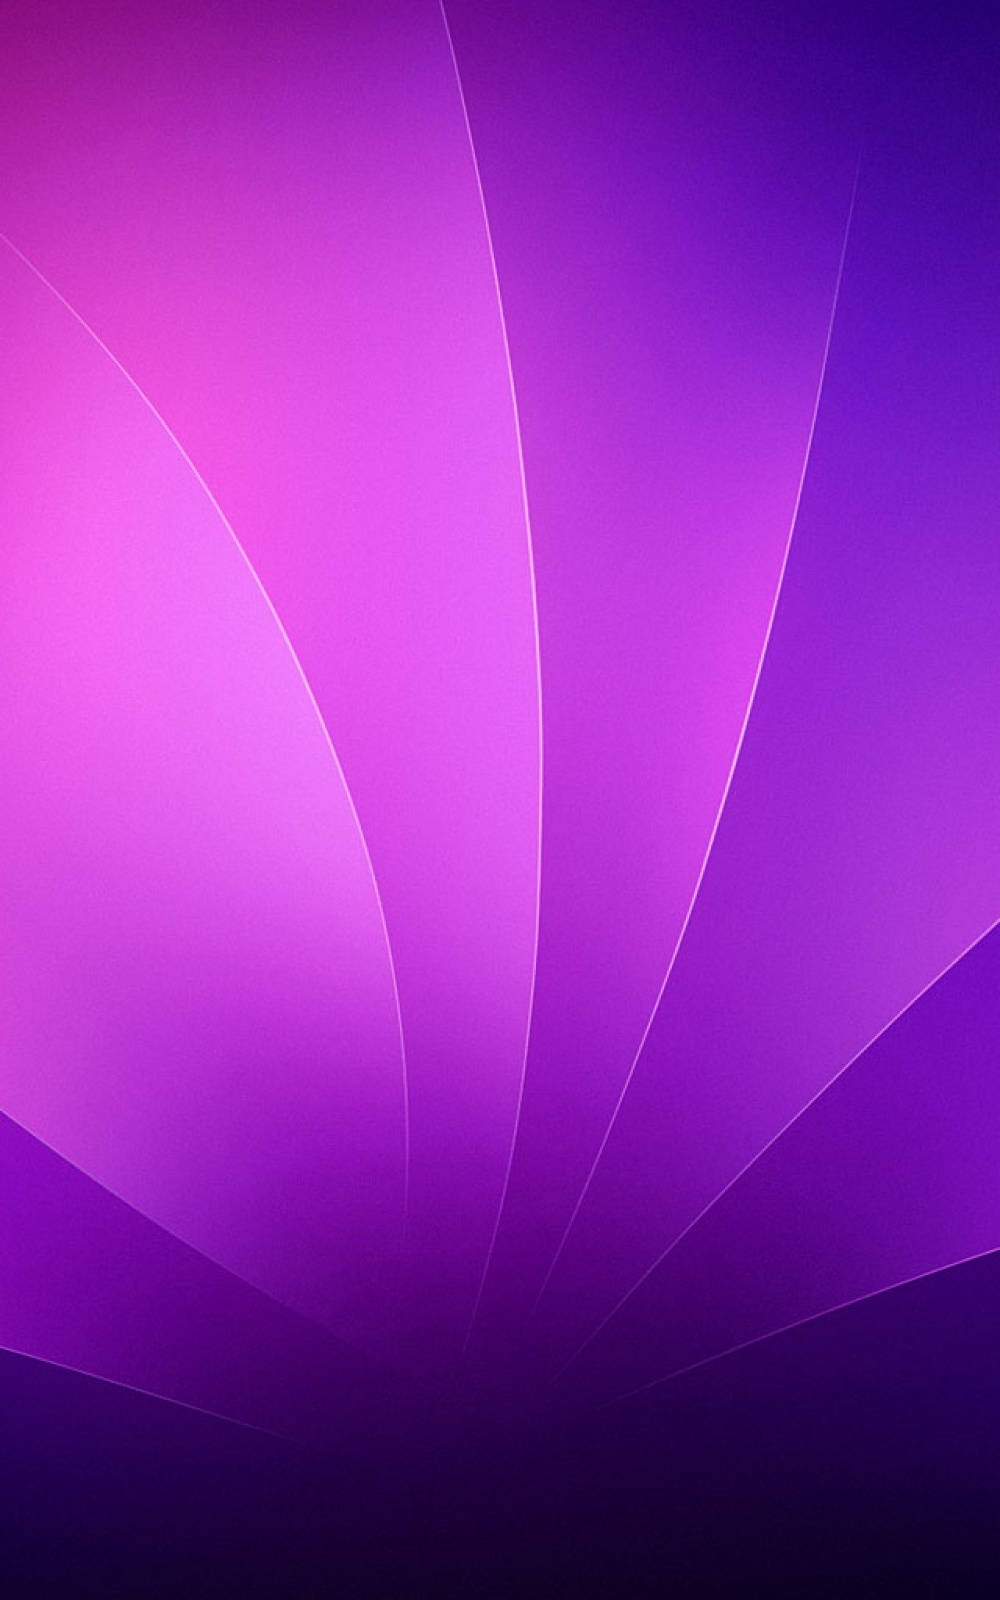 Download Wallpaper Mobile Purple - 1000-Purple-Leaves-Abstract-l  Perfect Image Reference_375741.jpg